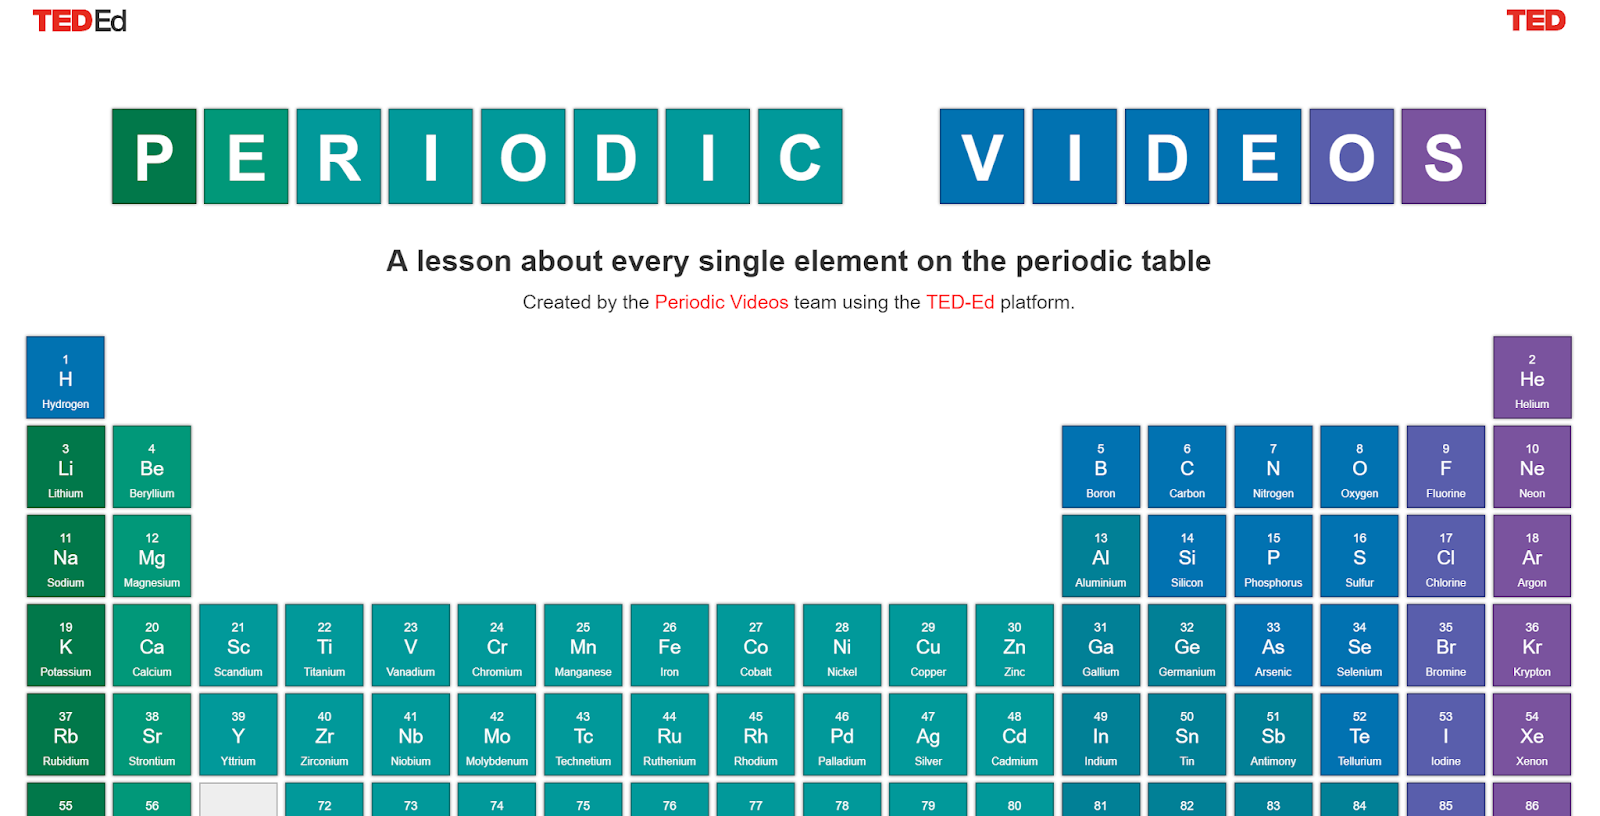 Free technology for teachers ted ed lessons about every element on for years i have referred readers to the university of nottinghams periodic table of videos that table provides a video about every element that is in the urtaz Images